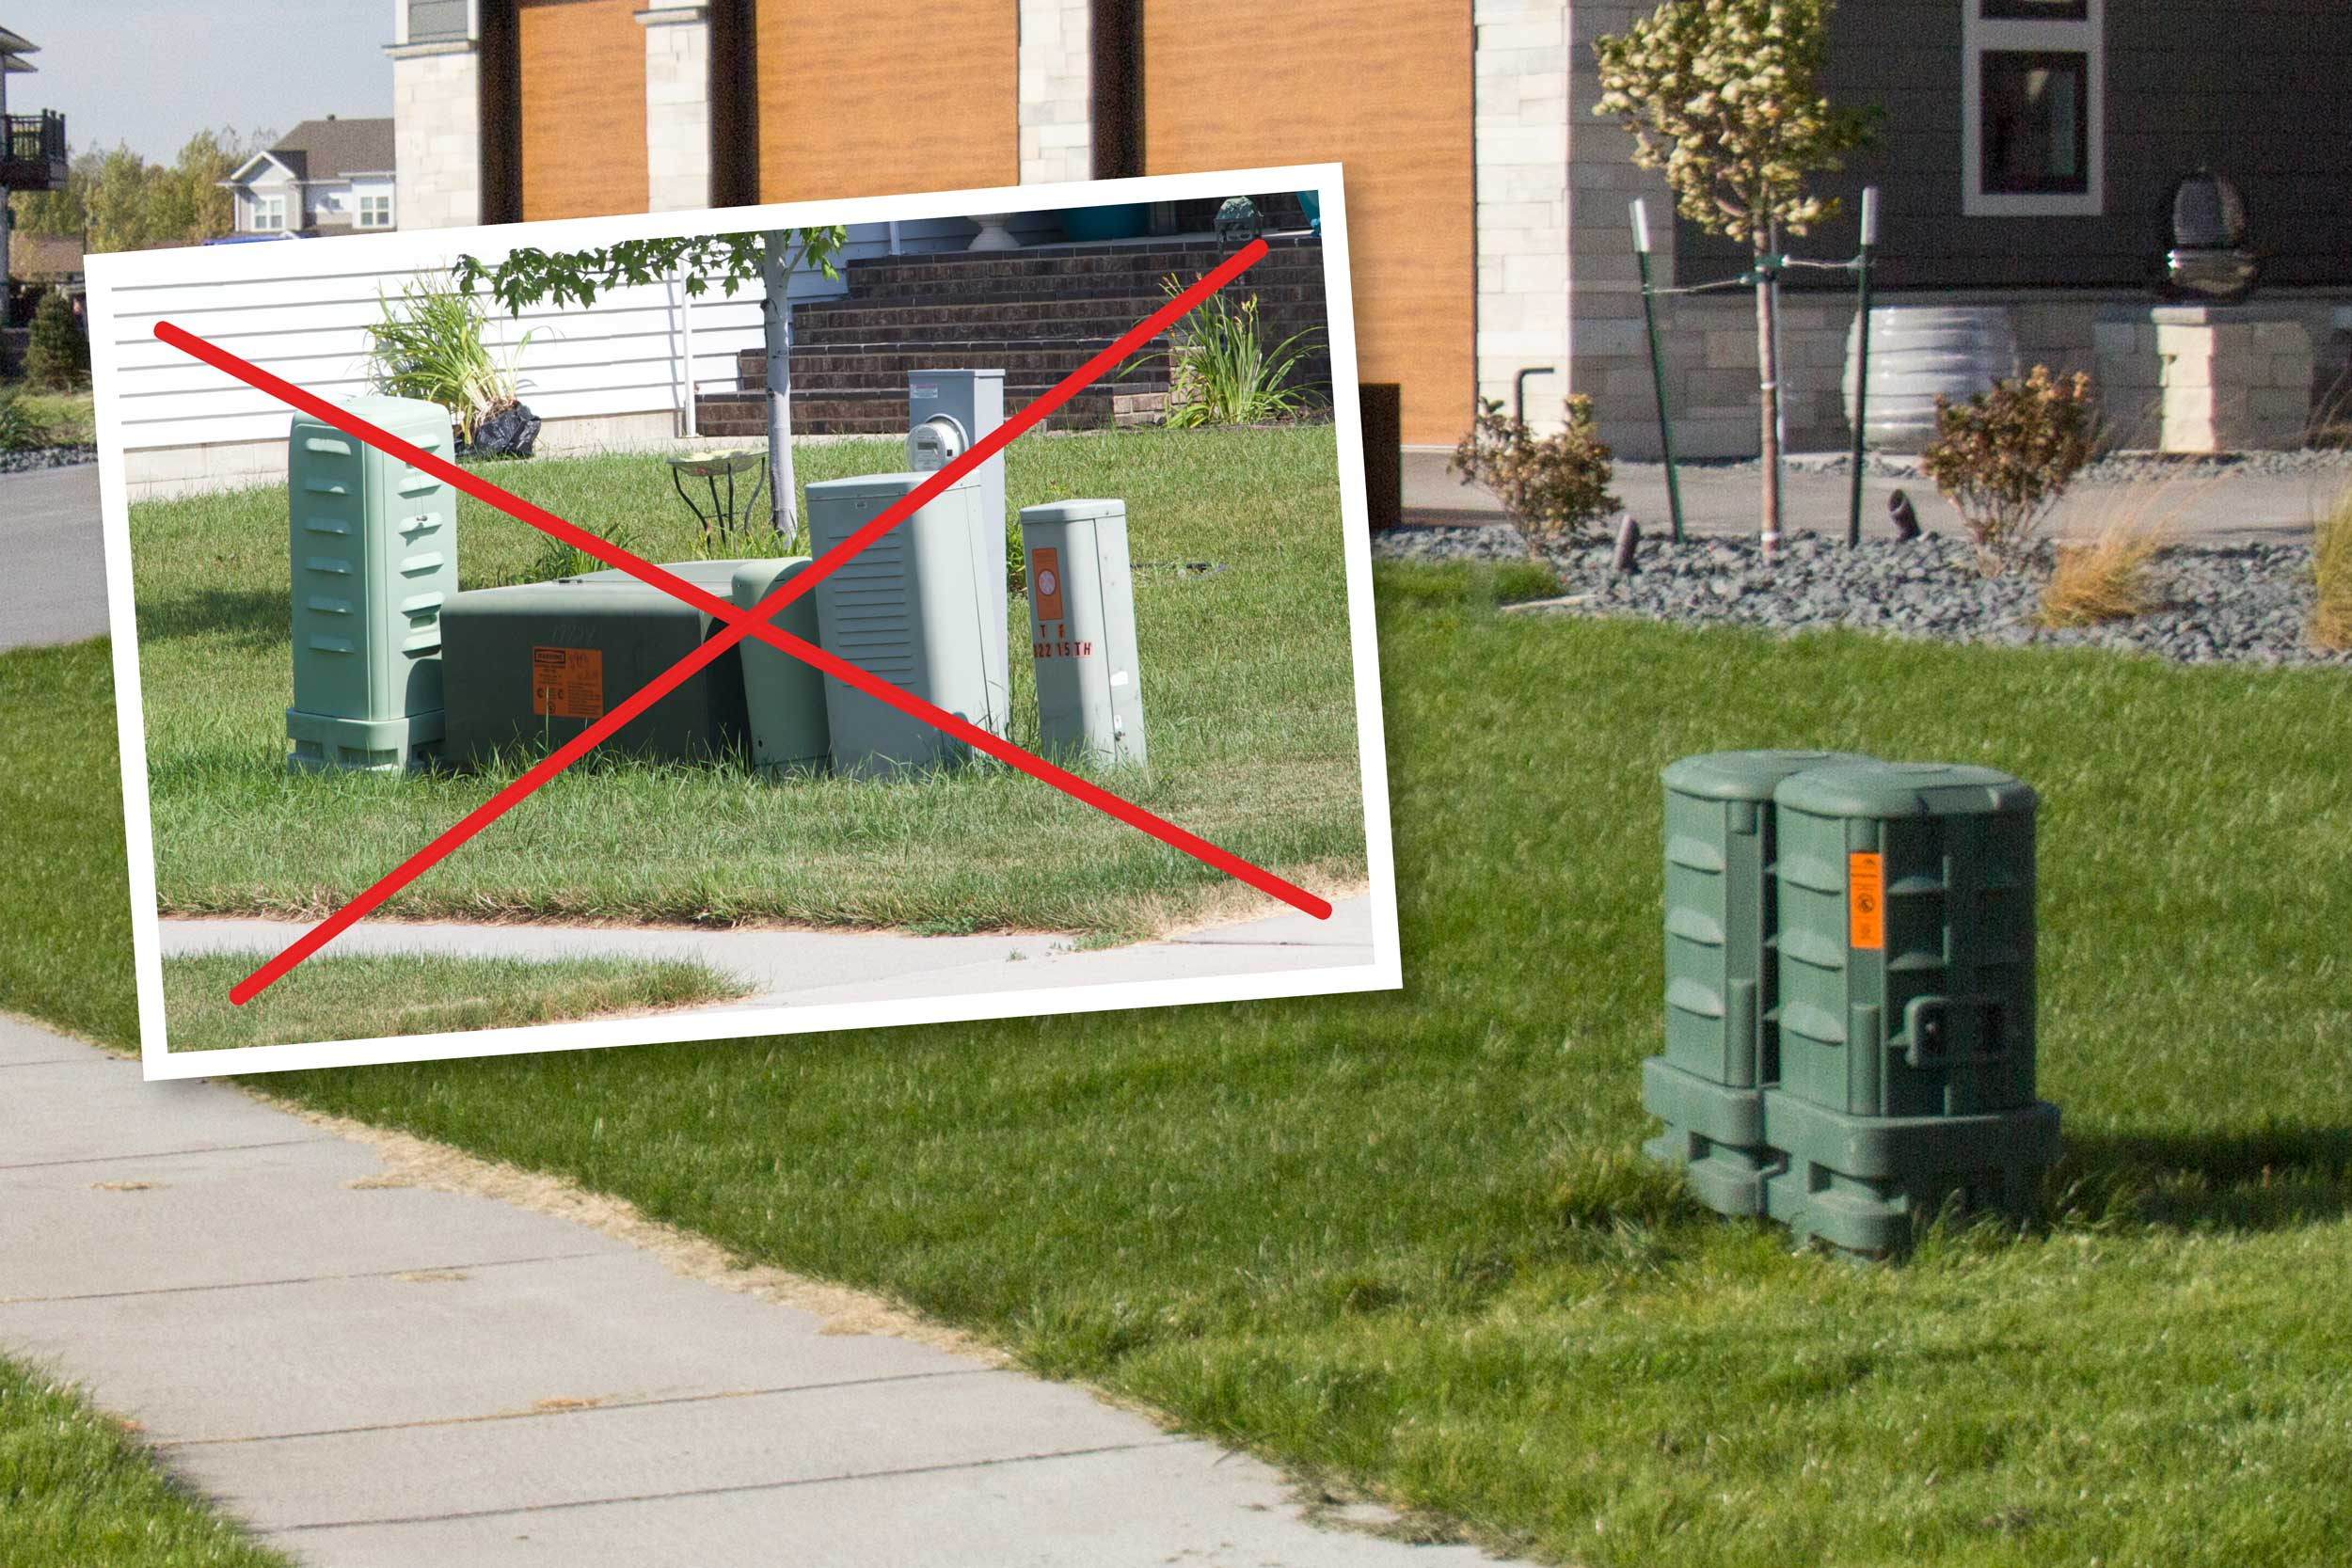 Limited Utility Boxes - To reduce yard clutter, we worked with cable providers Midco, Cable One and Century Link to utilize an identical communications pedestal matching the dark green electric transformers. The pedestals are also shared amongst providers to minimize the amount of boxes.